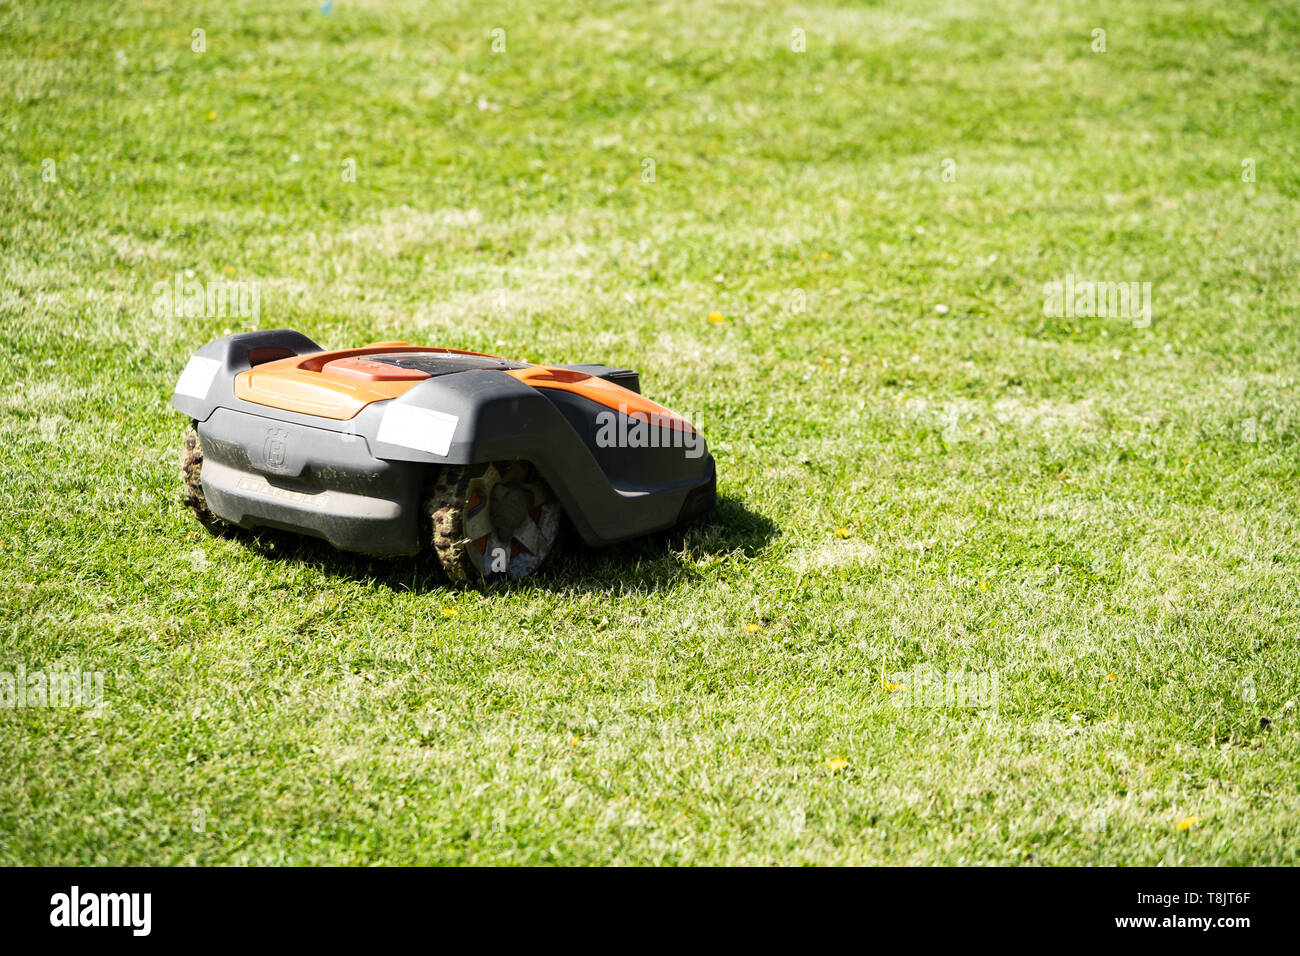 Husqvarna Automower robot lawnmower cutting a lawn, UK - Stock Image